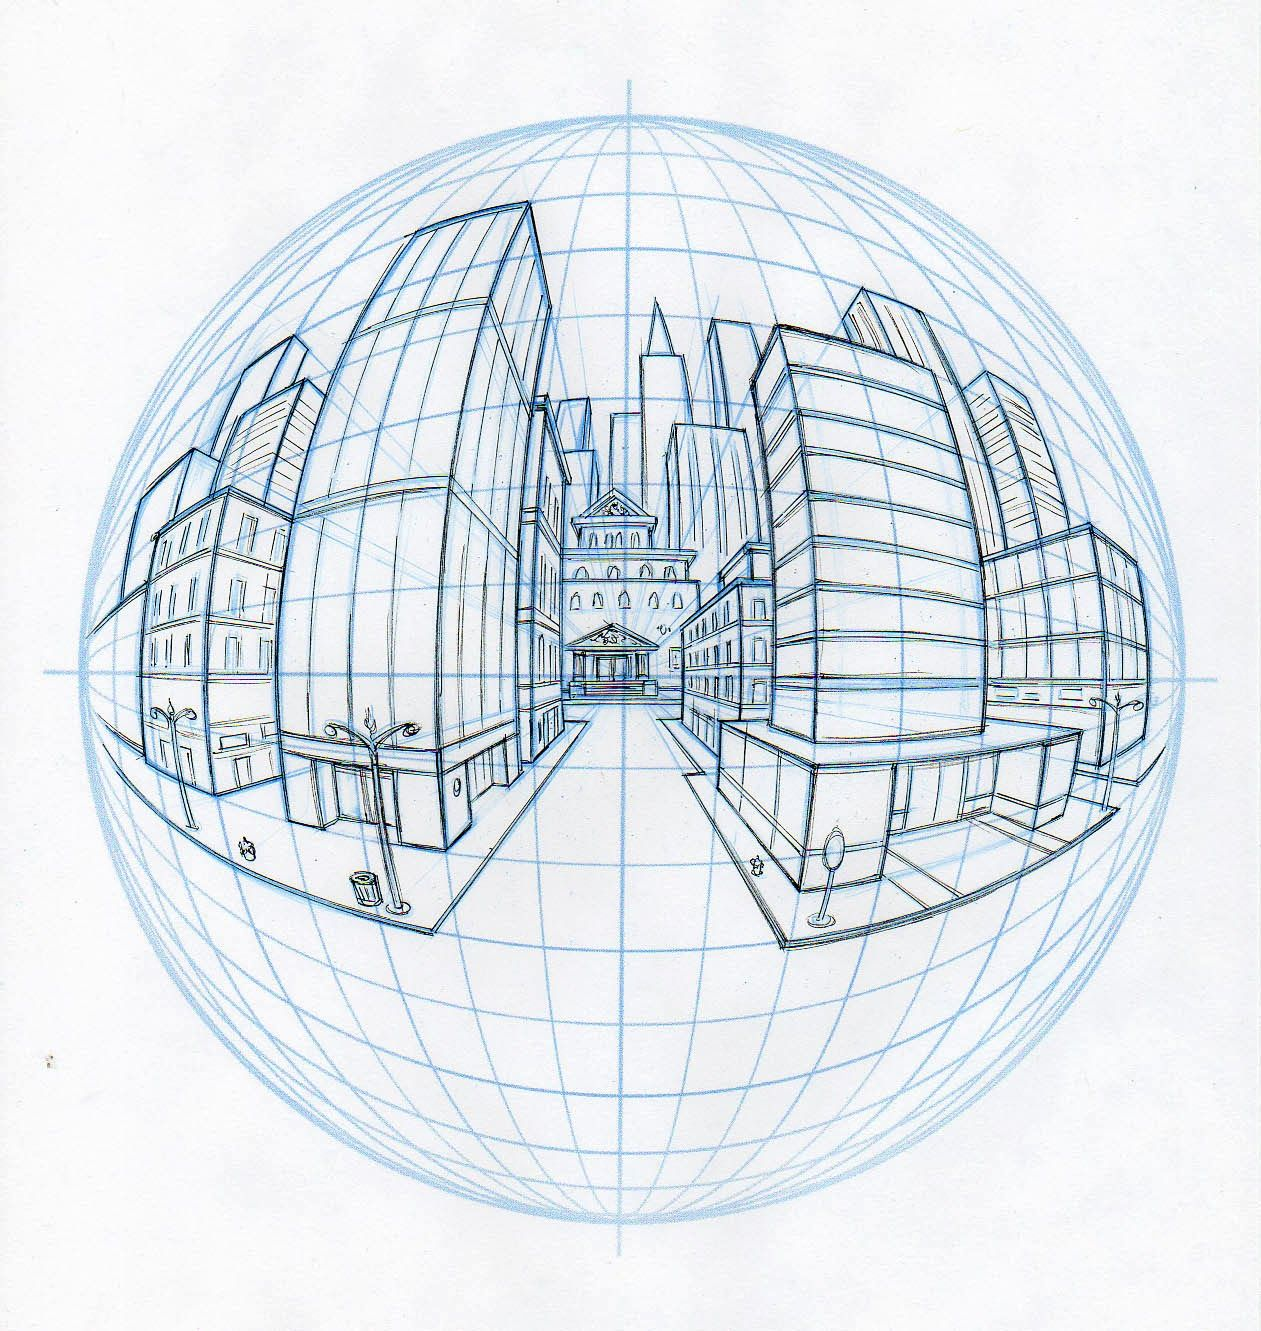 Art of Starnes: Perspective. These are sample diagrams created for my perspective drawing classes at the Academy of Art University.